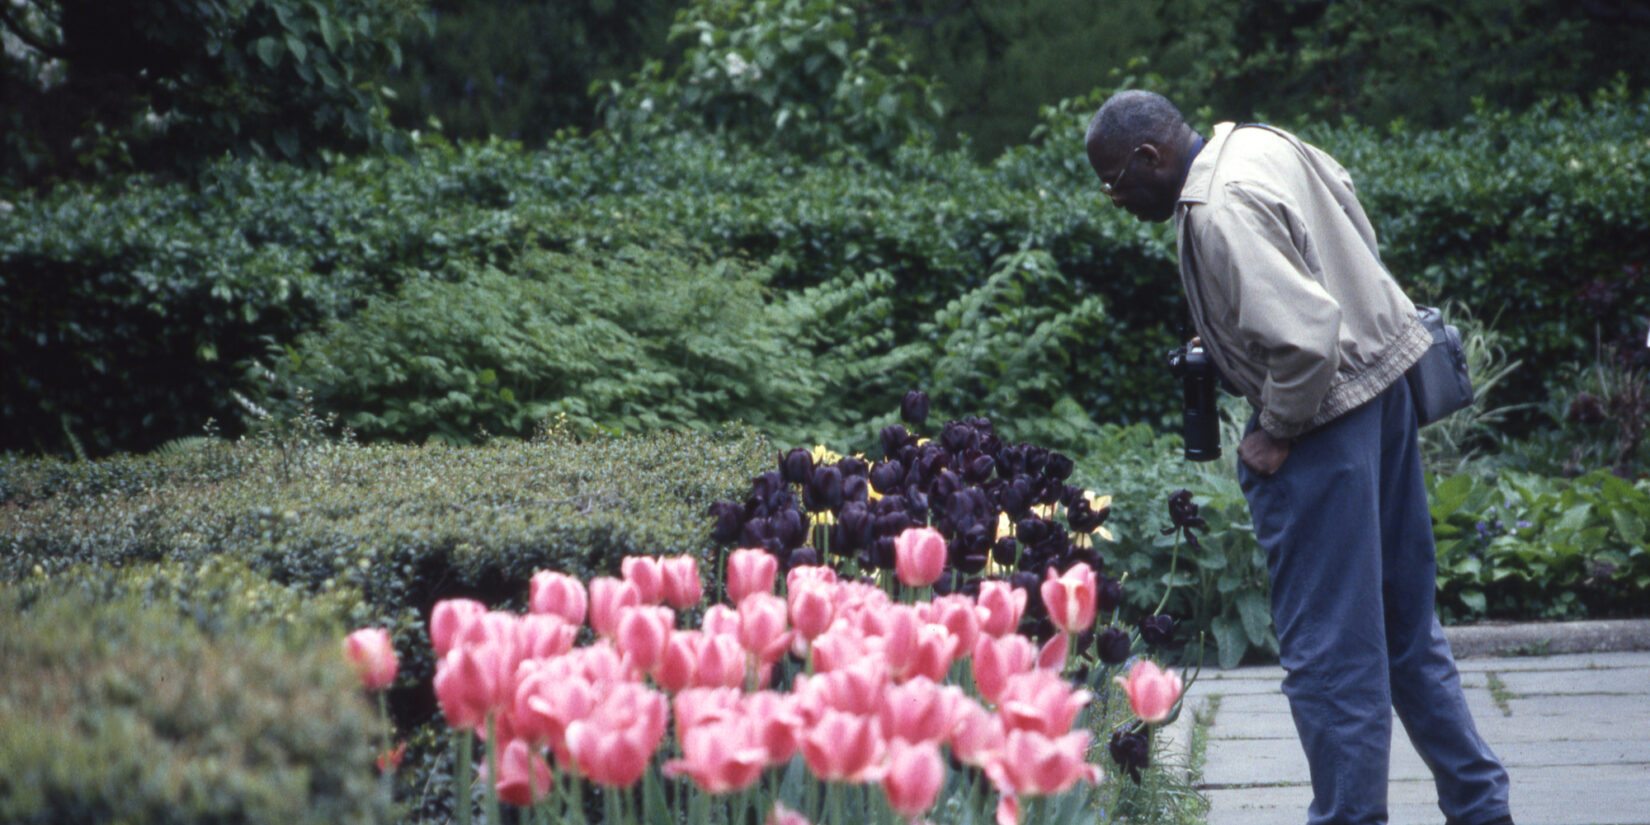 A photographer gets a closer look at some deep purple blooms in the Garden